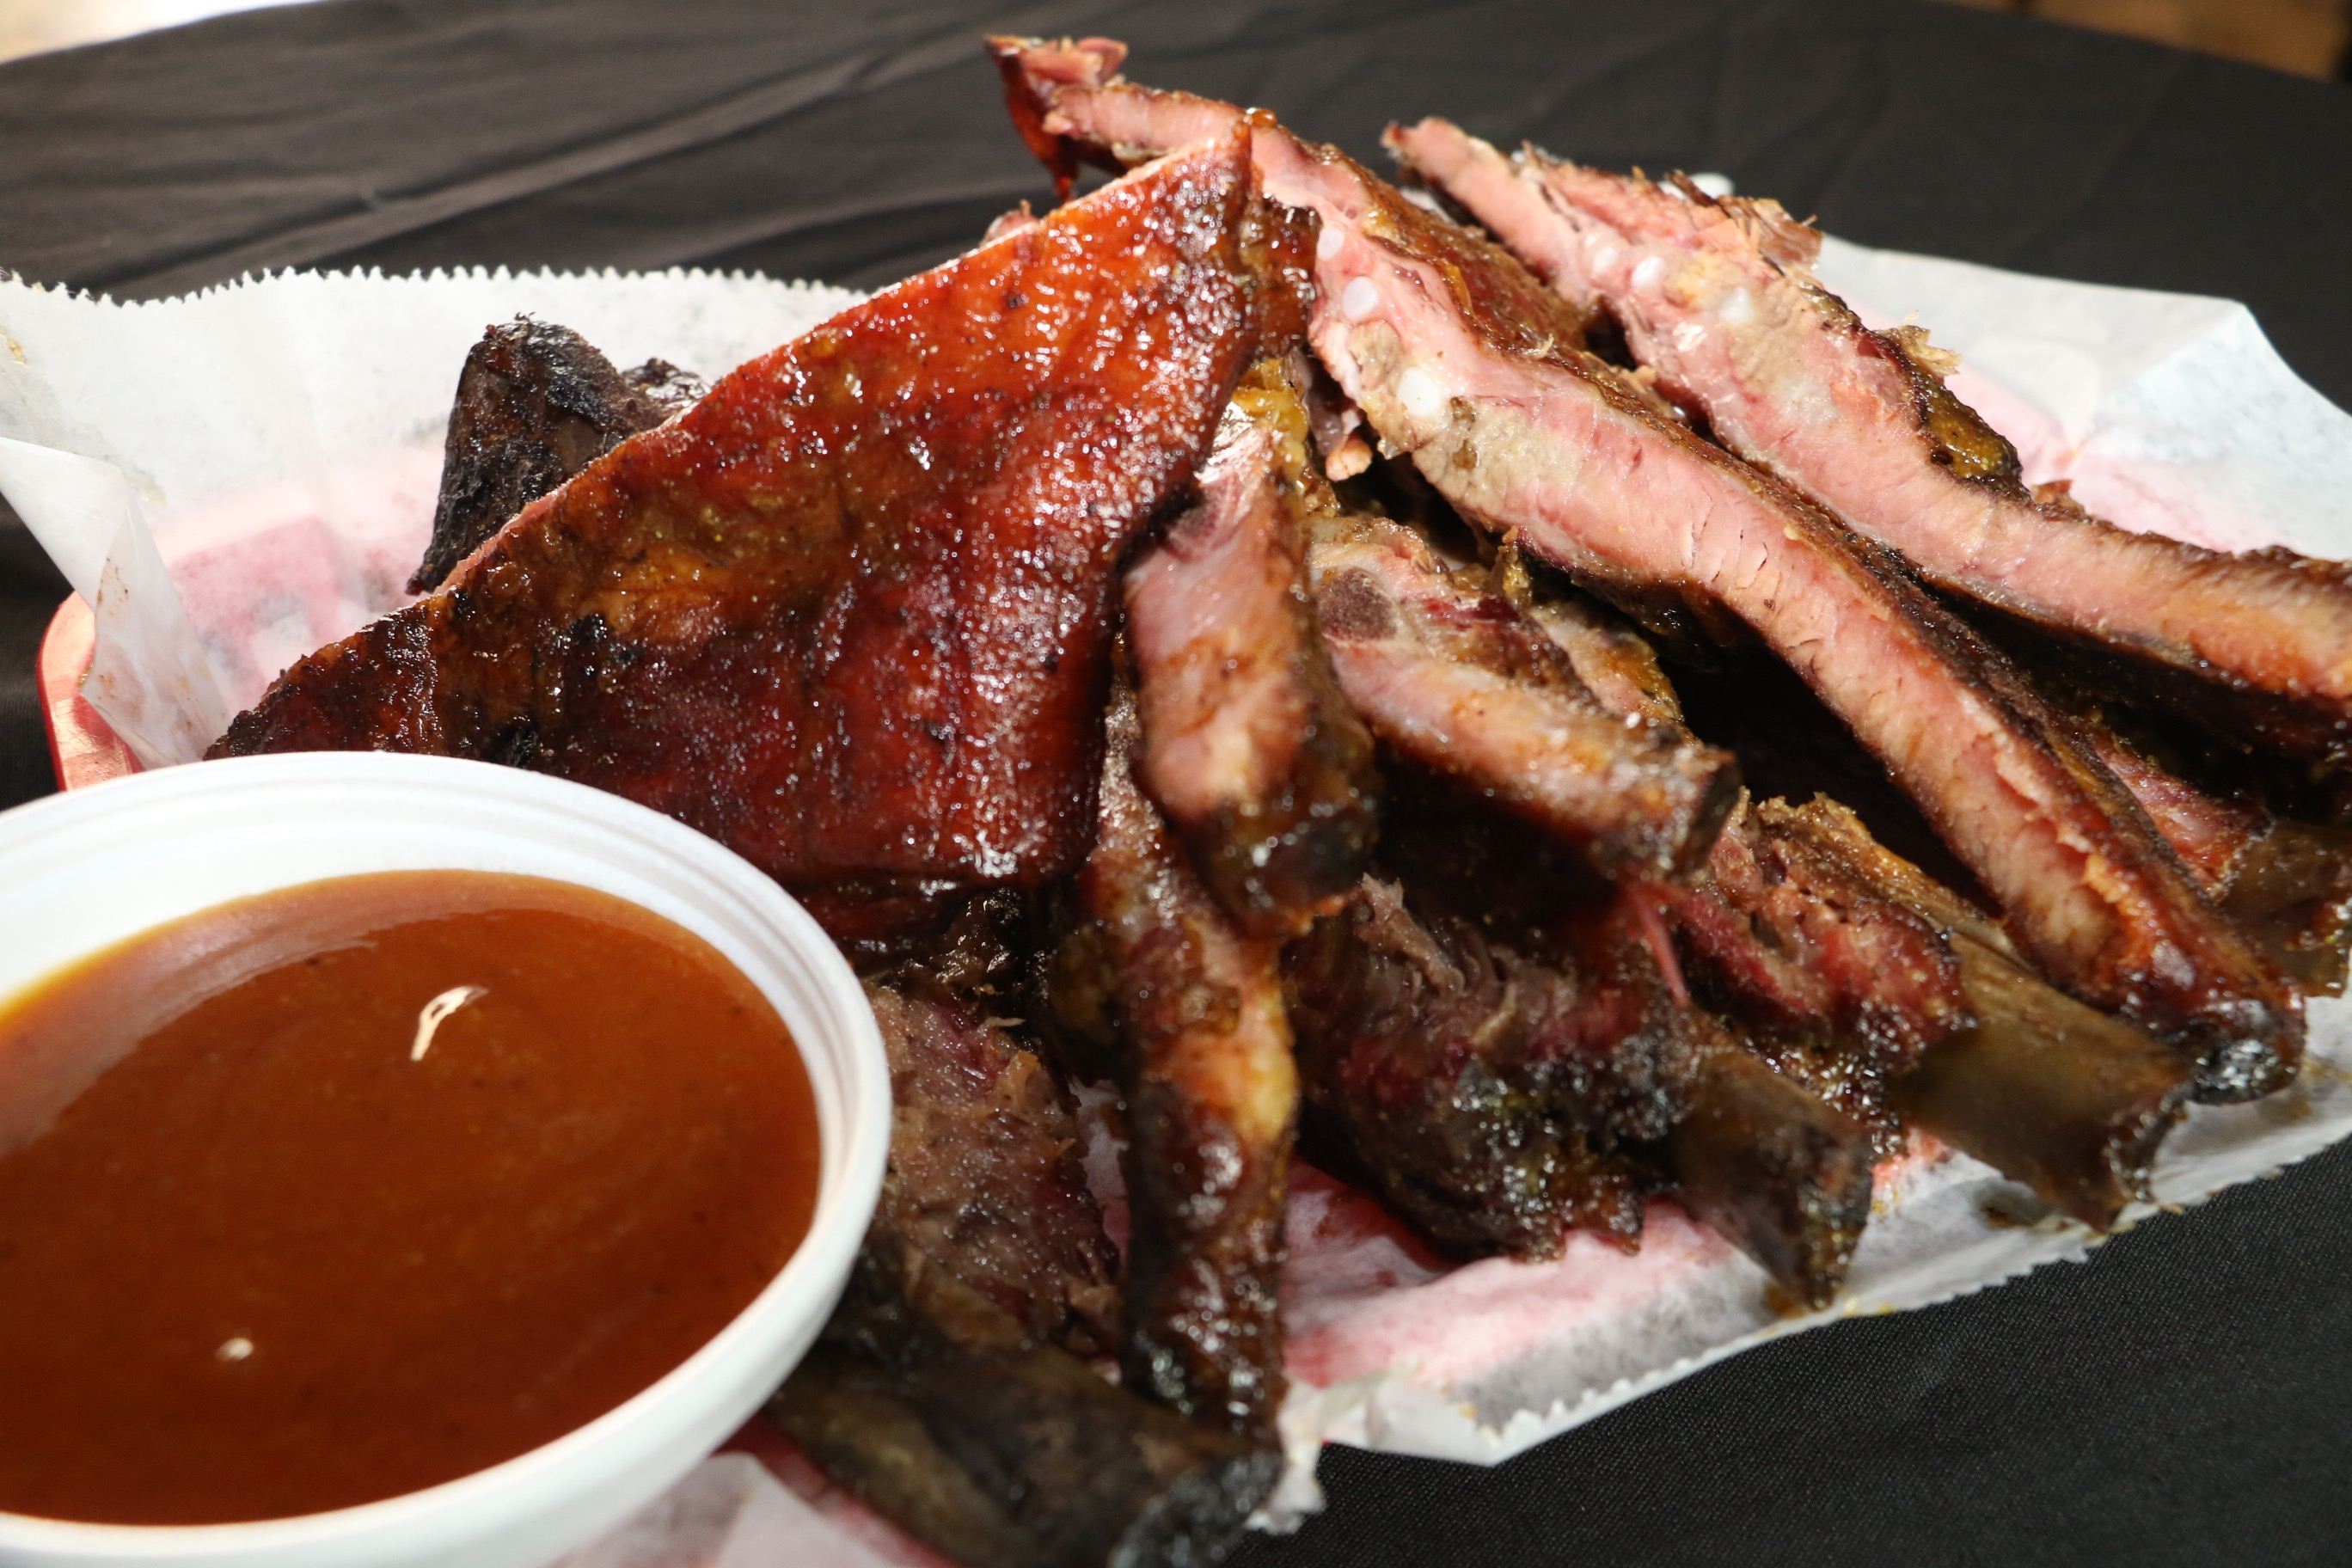 Southern Pit Style Restaurant Barbeque